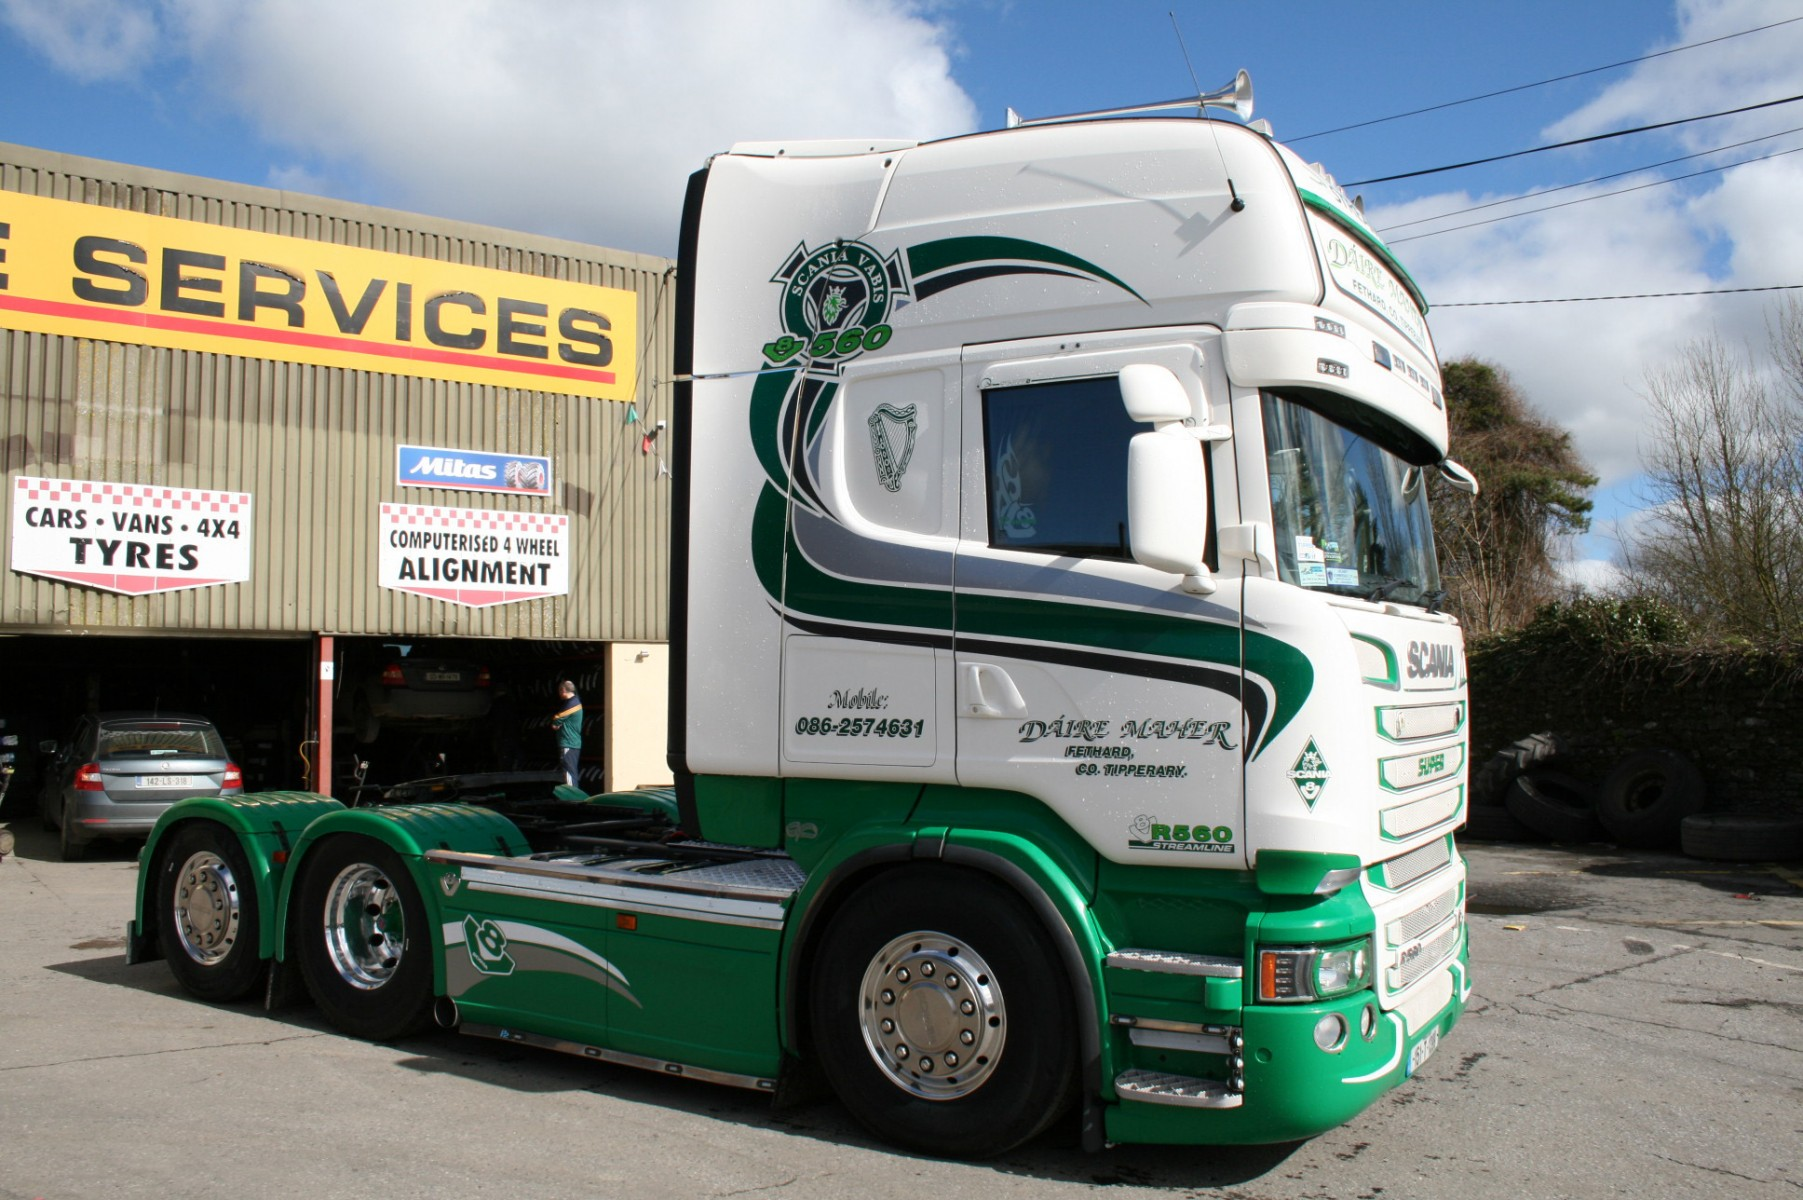 353-01-Michelin-Daire-Maher-Haulage